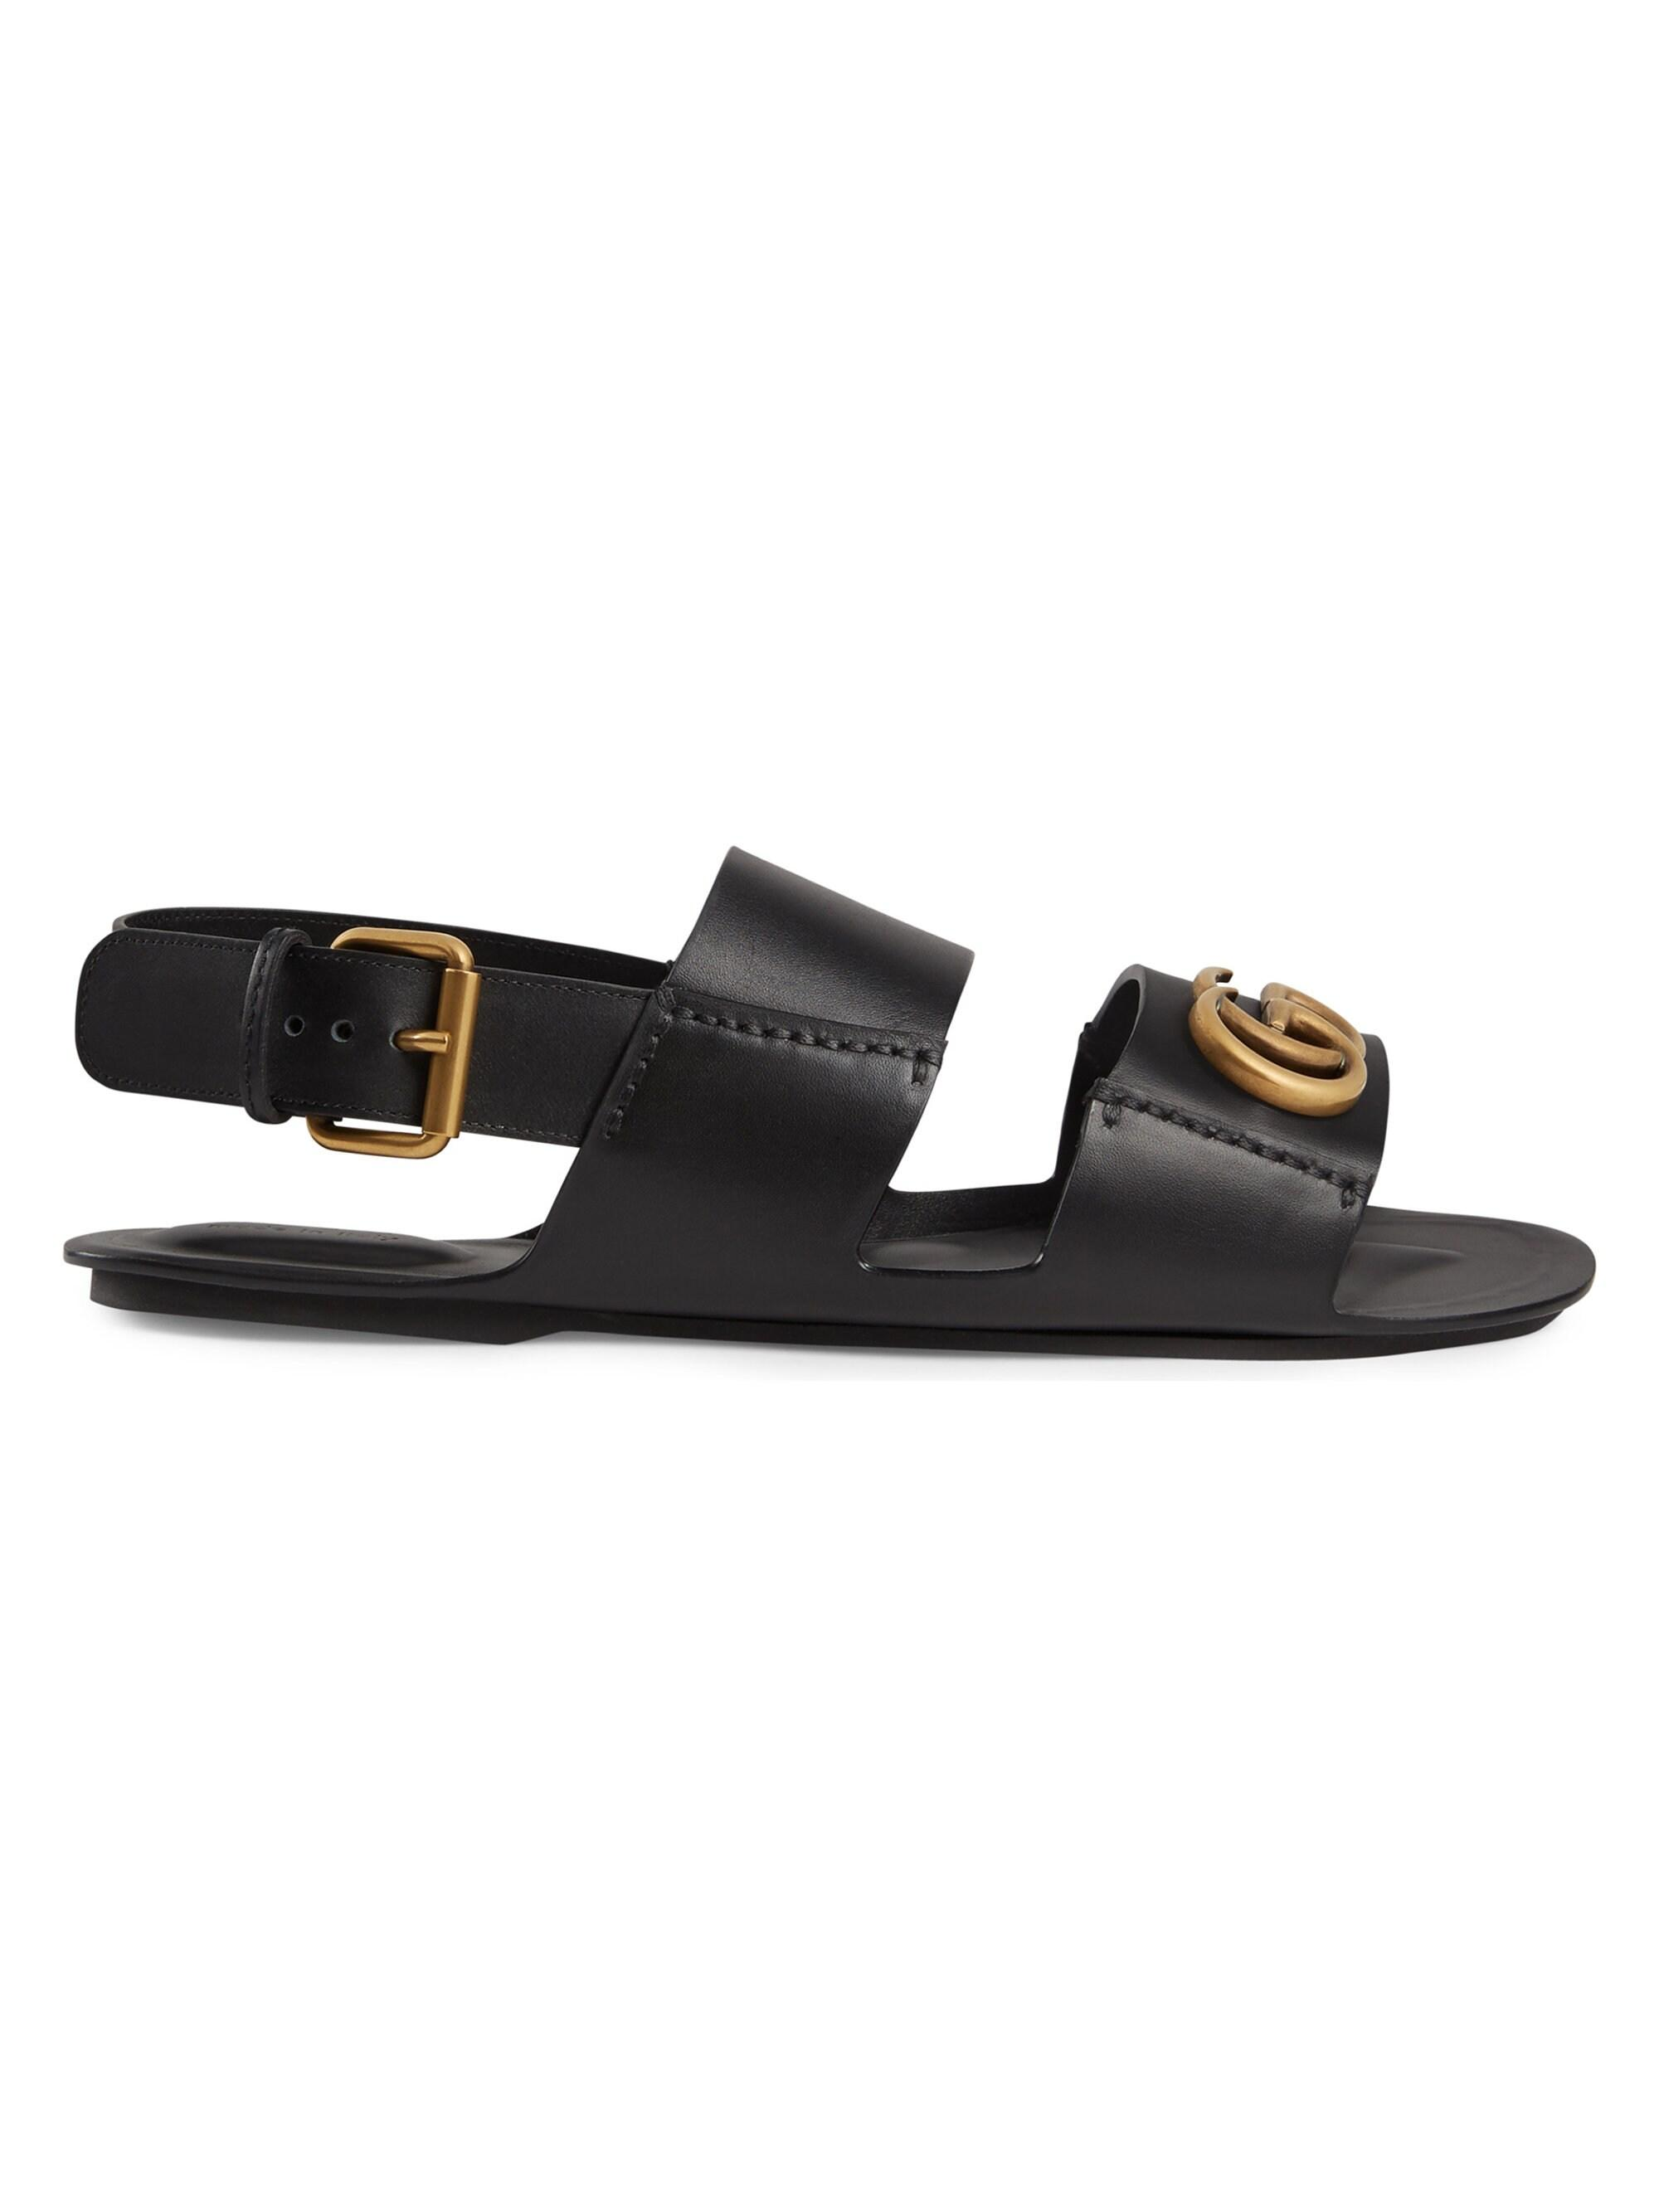 Gucci GG Marmont Leather Sandals in